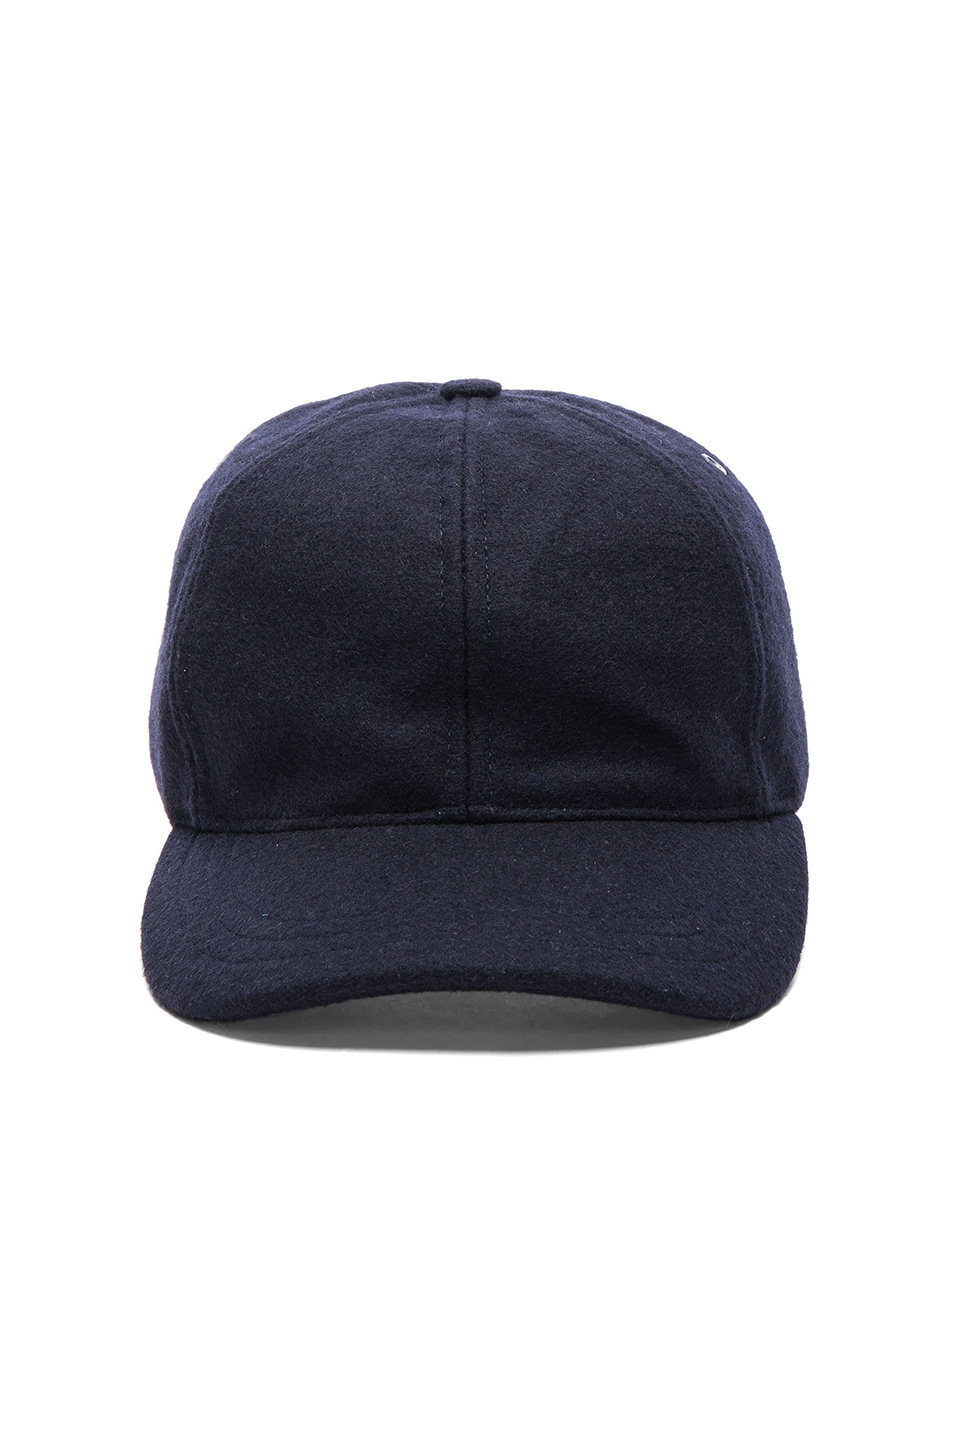 Image 1 of A.P.C. Classic Cap in Dark Navy 80823f76224